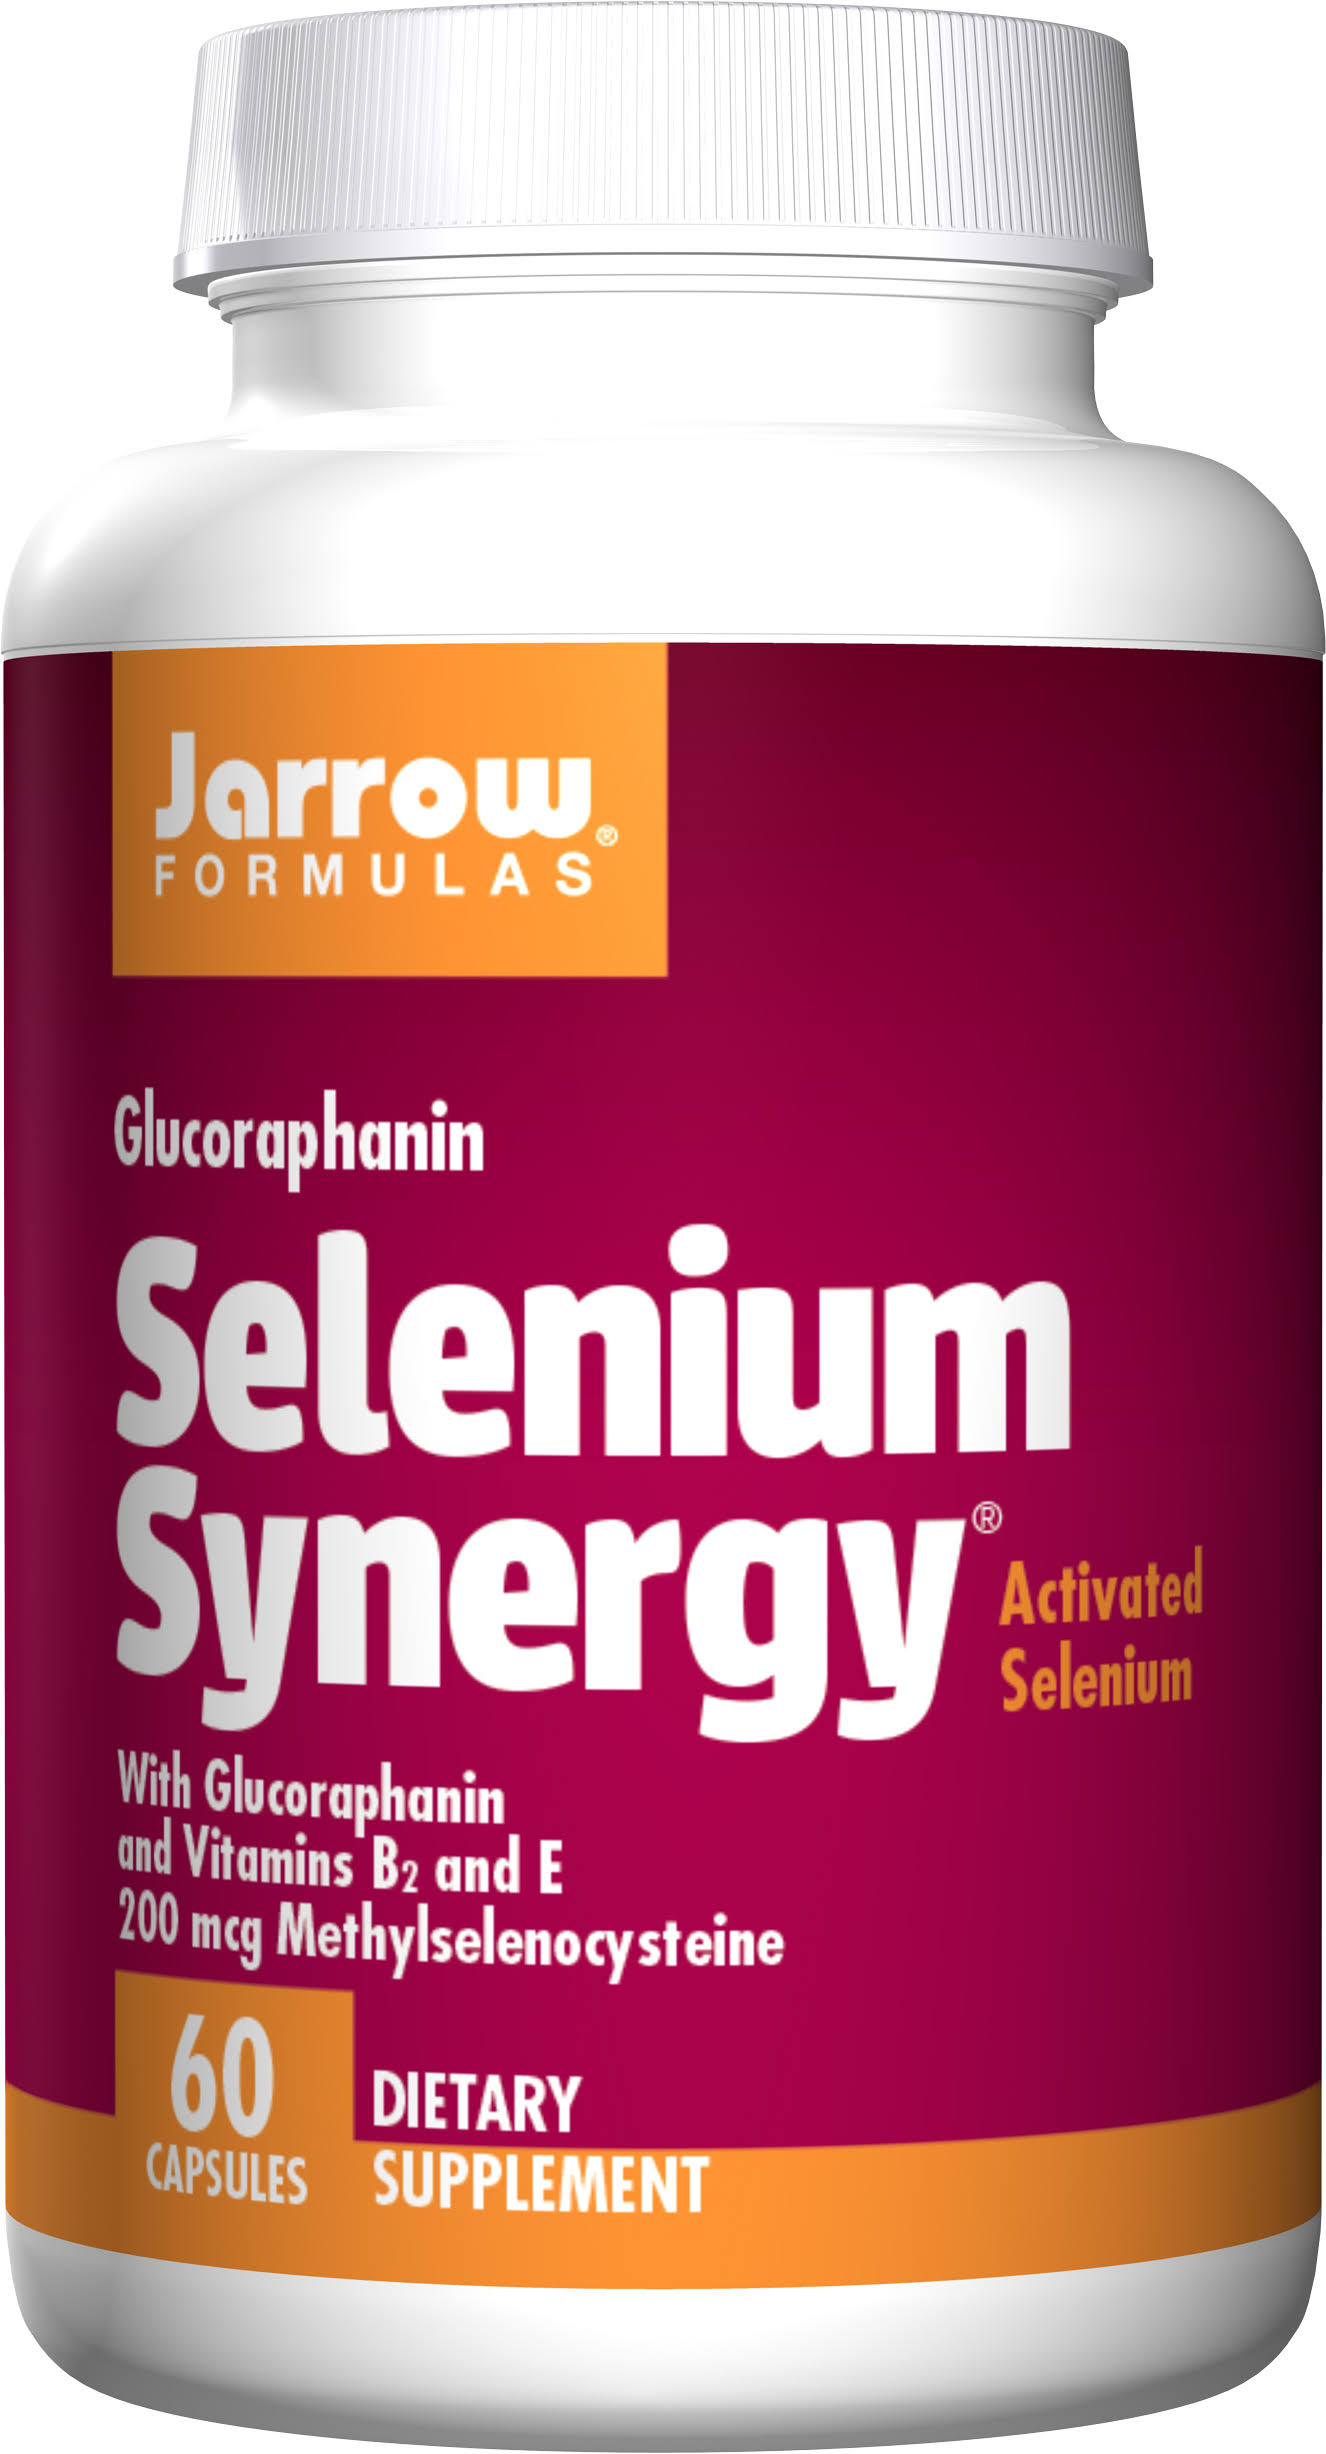 Jarrow Formulas Selenium Synergy Supplement - 60 Capsules